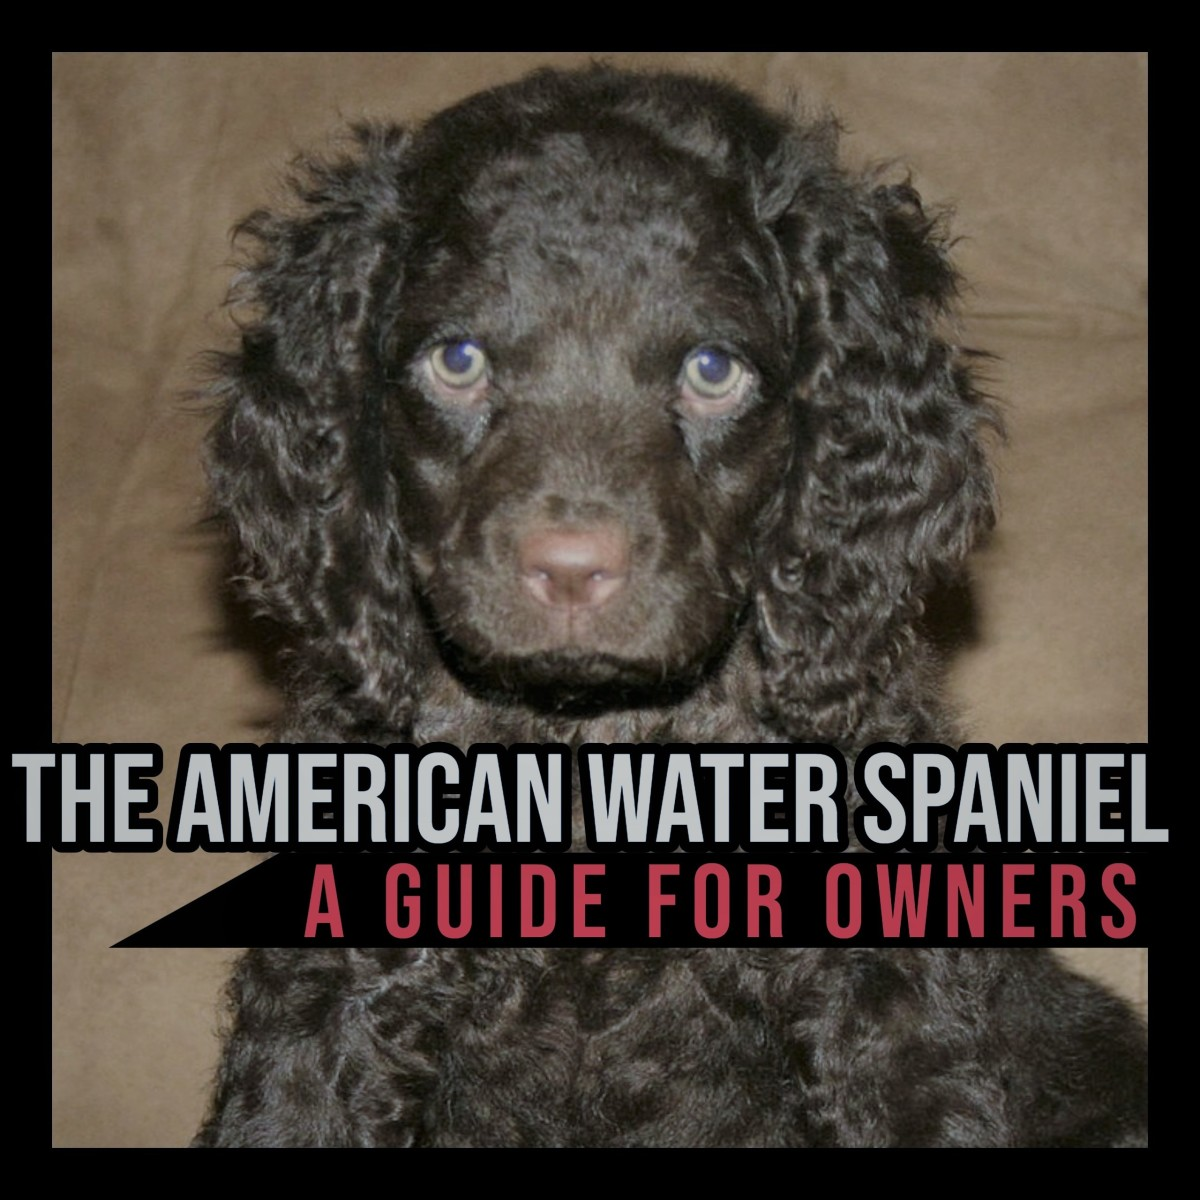 The American Water Spaniel: A Guide for Owners.